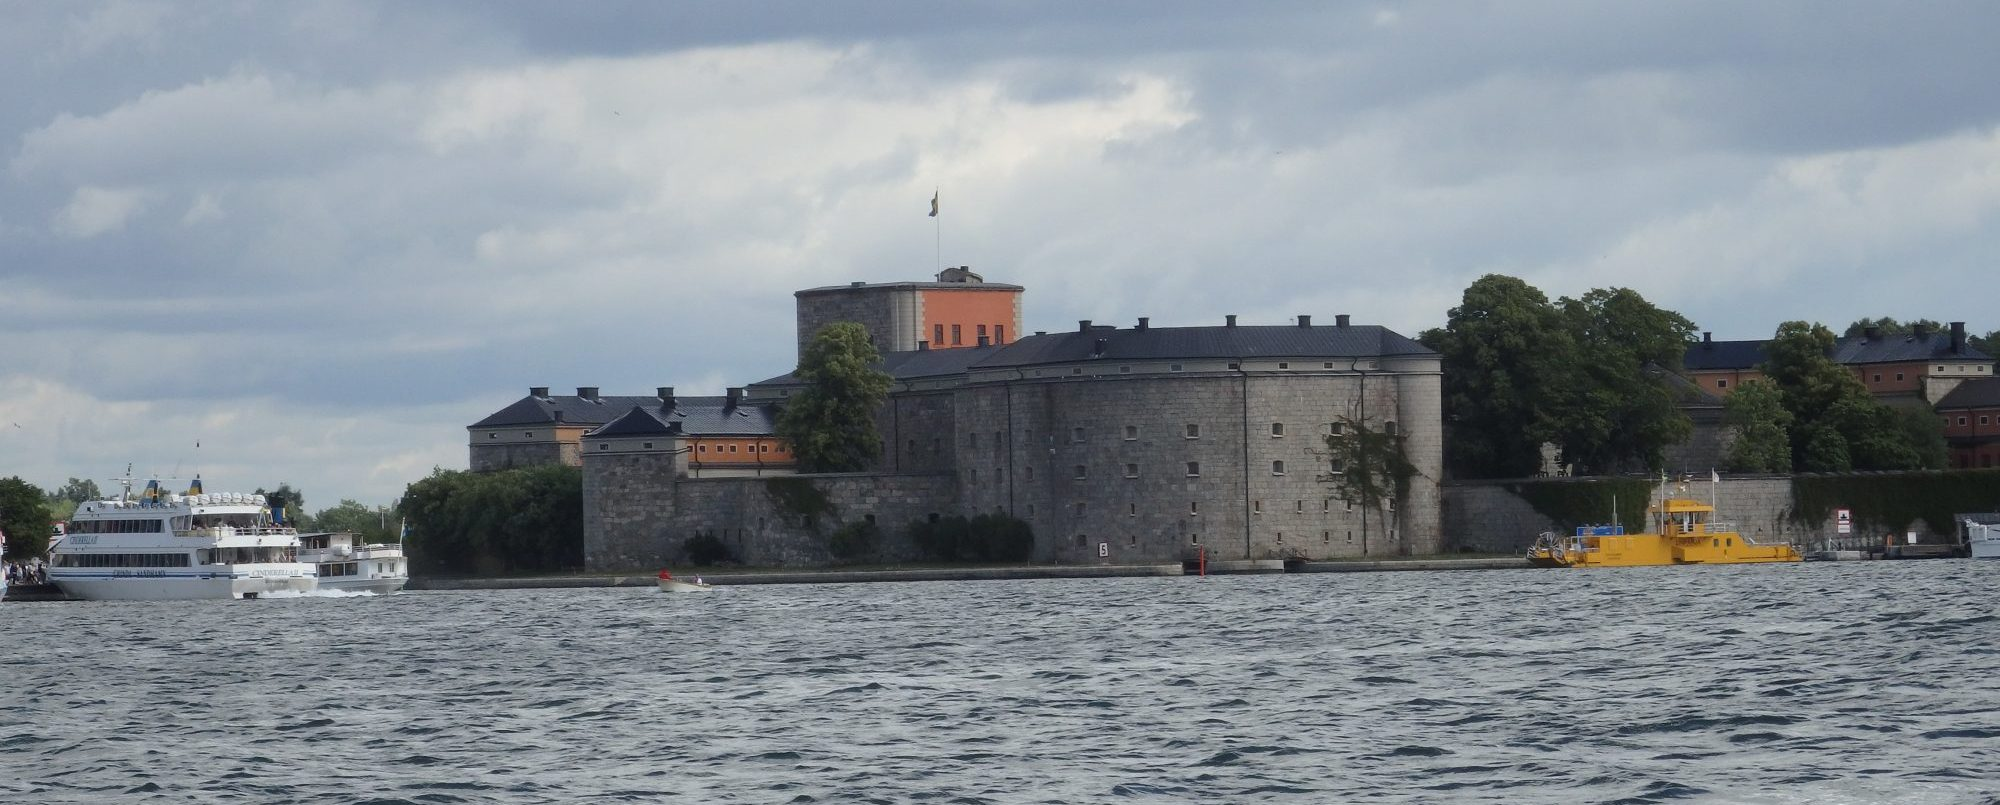 Vaxholm fortress in the Stockholm archipelago as seen from the water